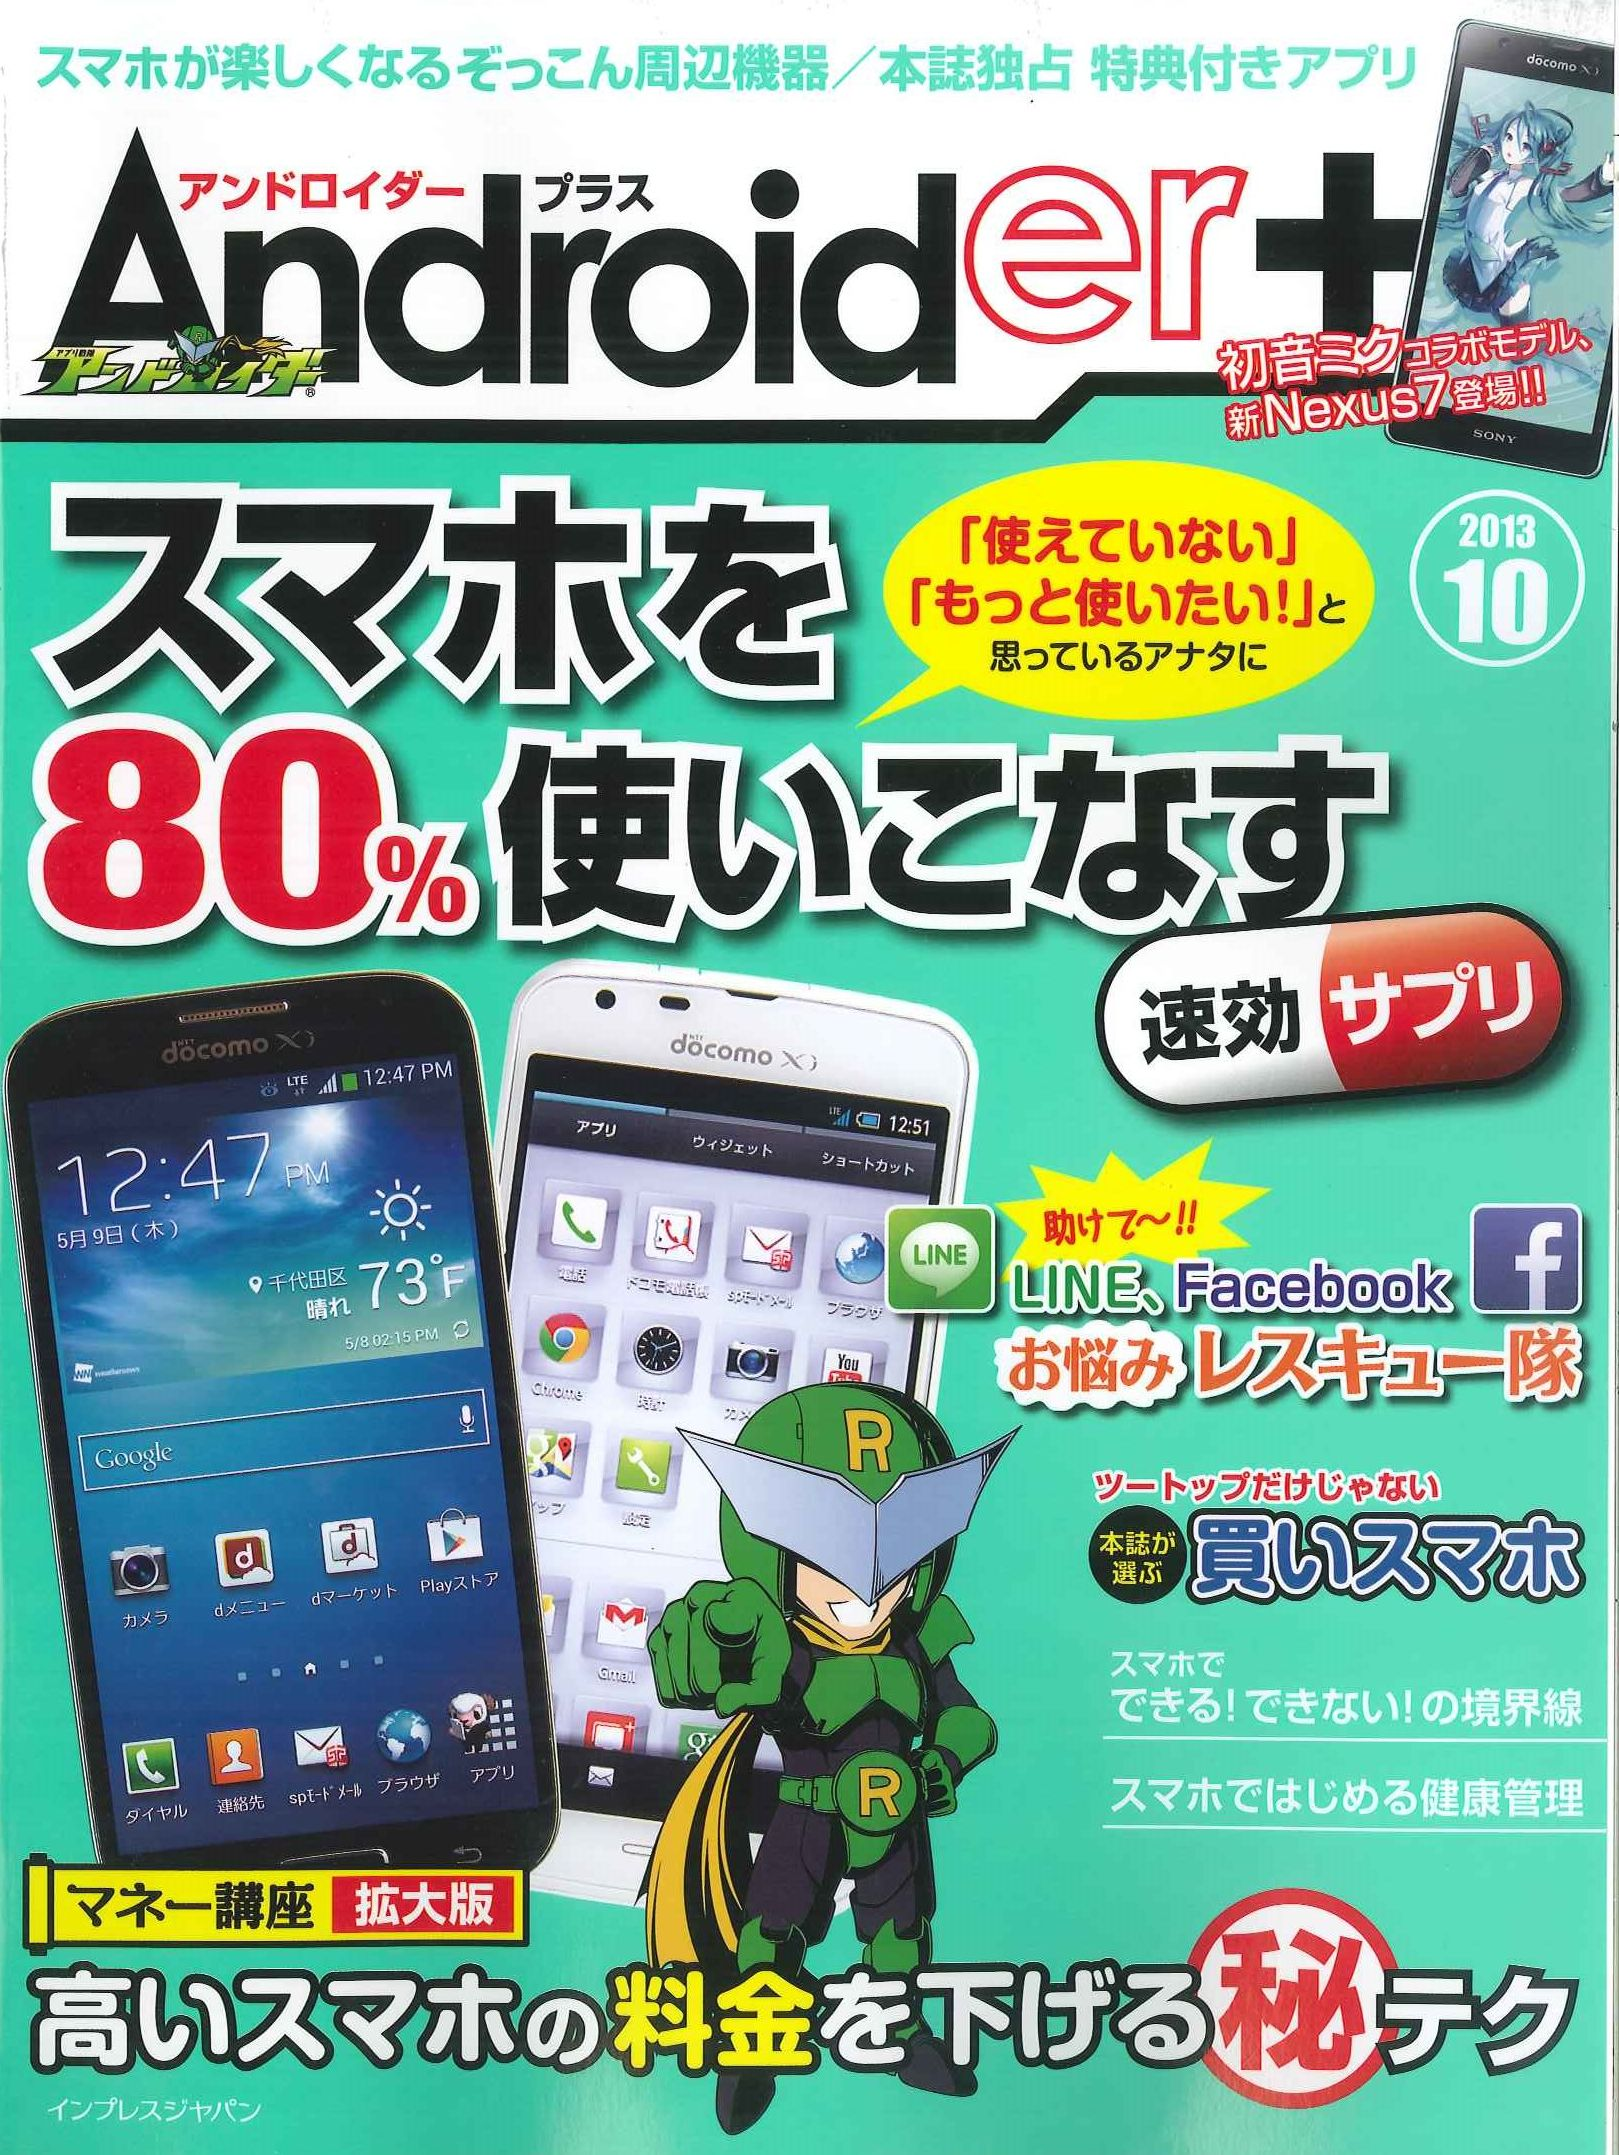 Androider+ 10月号イメージ